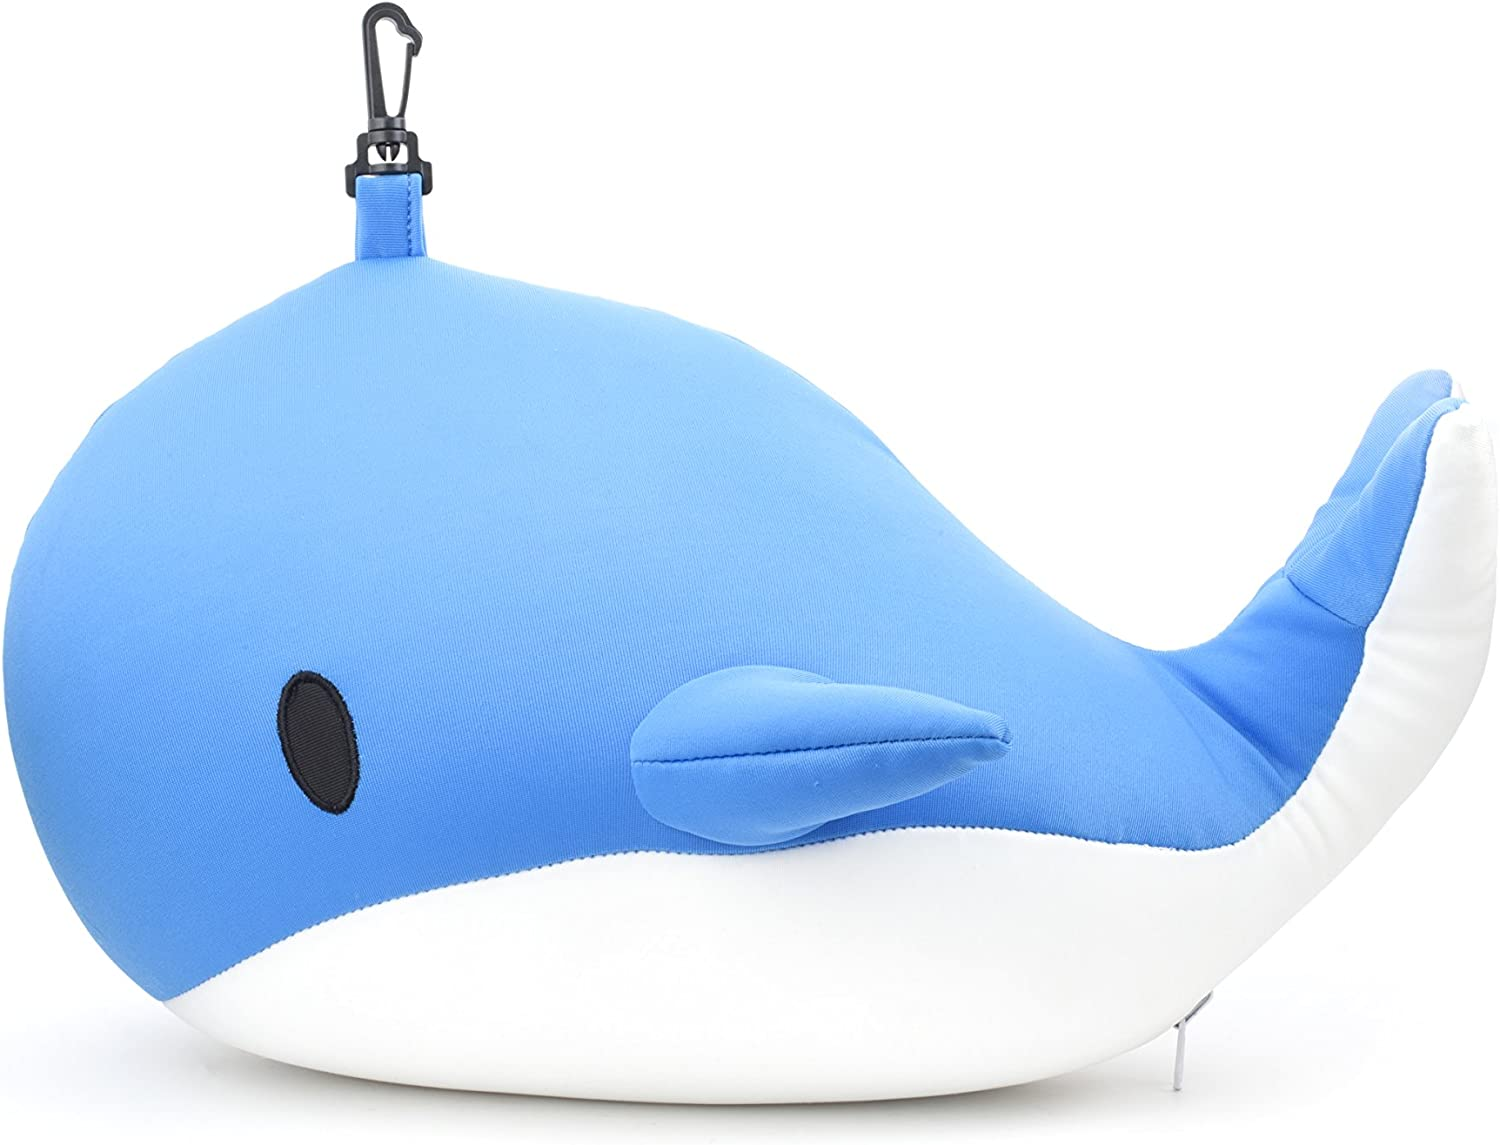 Bettli 23.5 Very Soft Blue Whale Shark Big Hugging Pillow Plush Doll Fish Plush Toy Stuffed Animals for Gift Blue Whale